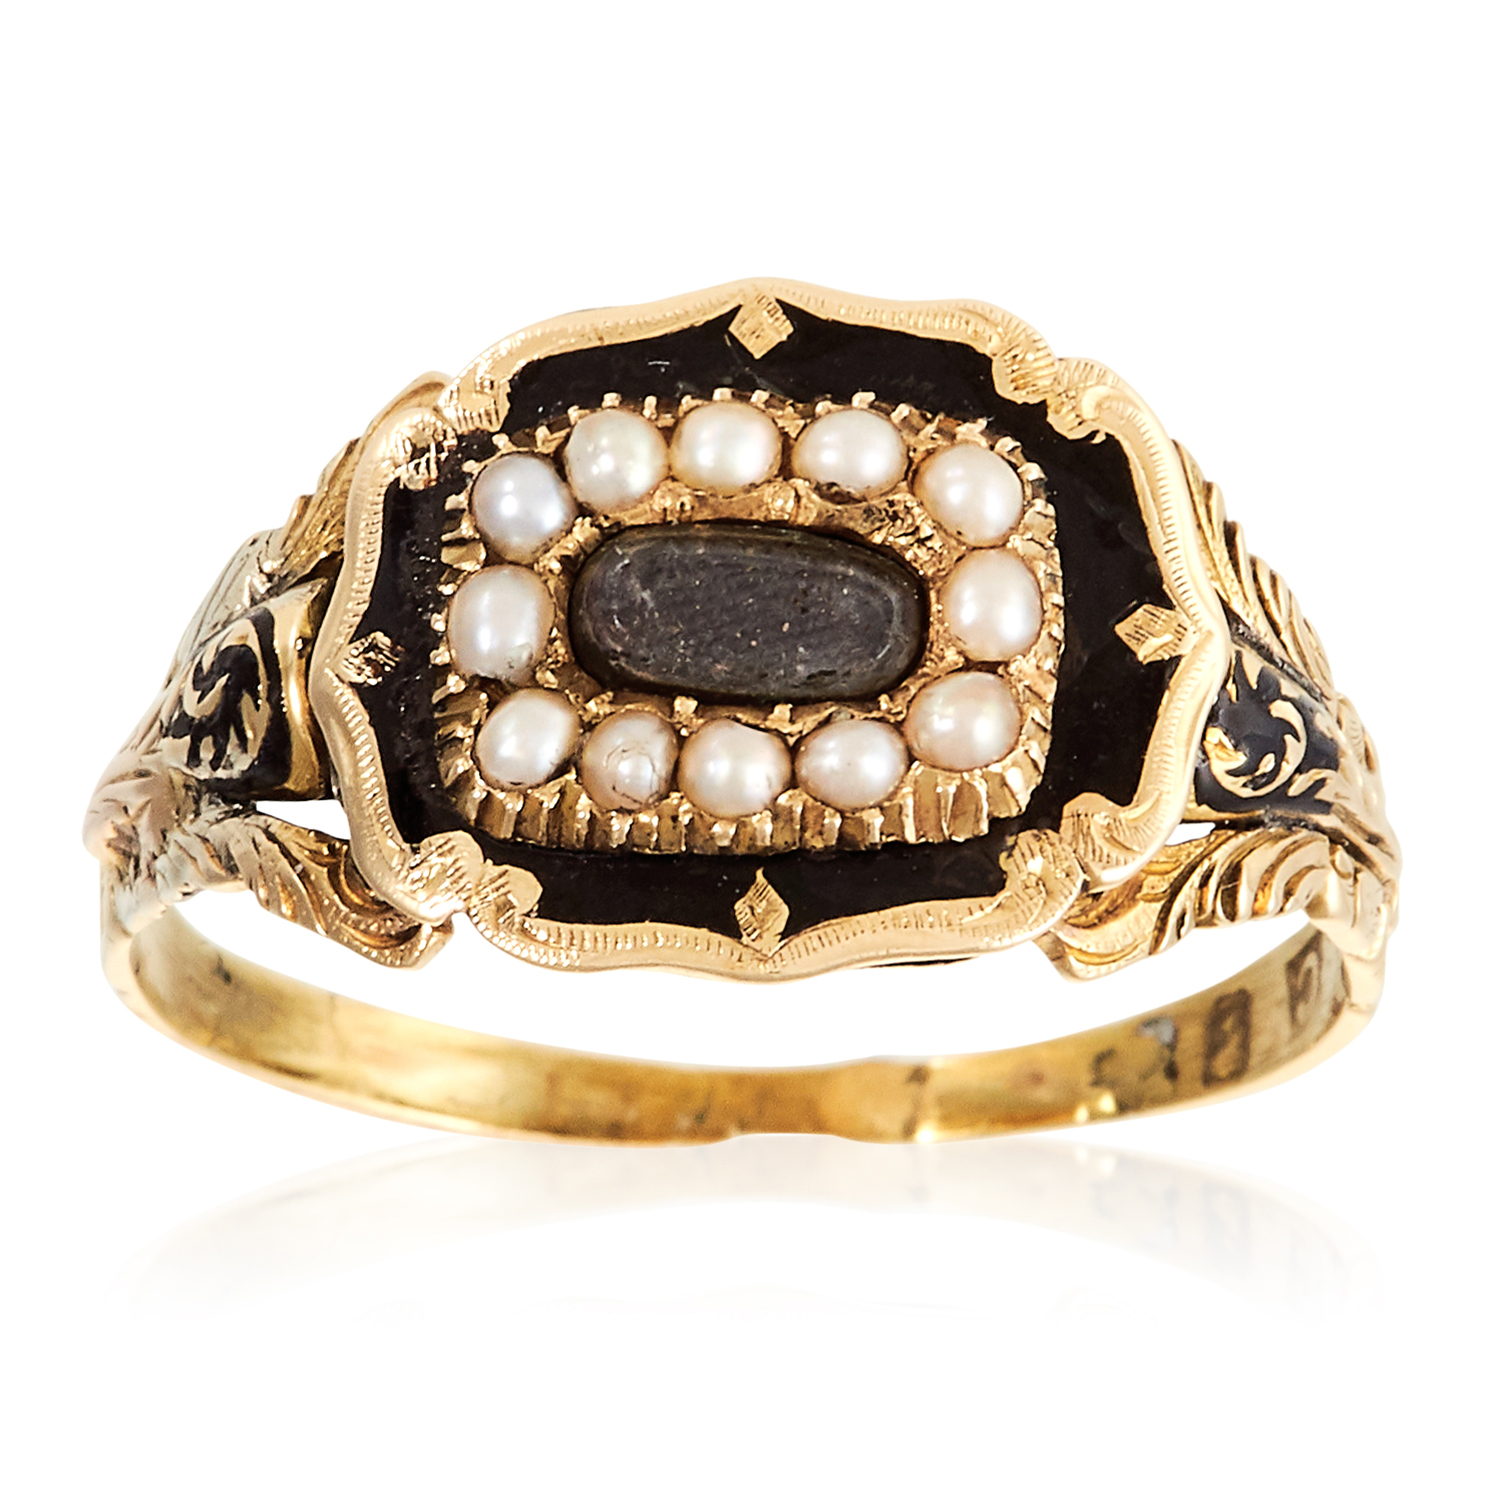 Los 39 - AN ANTIQUE HAIRWORK, PEARL AND ENAMEL MOURNING RING, CIRCA 1840 in high carat yellow gold, set